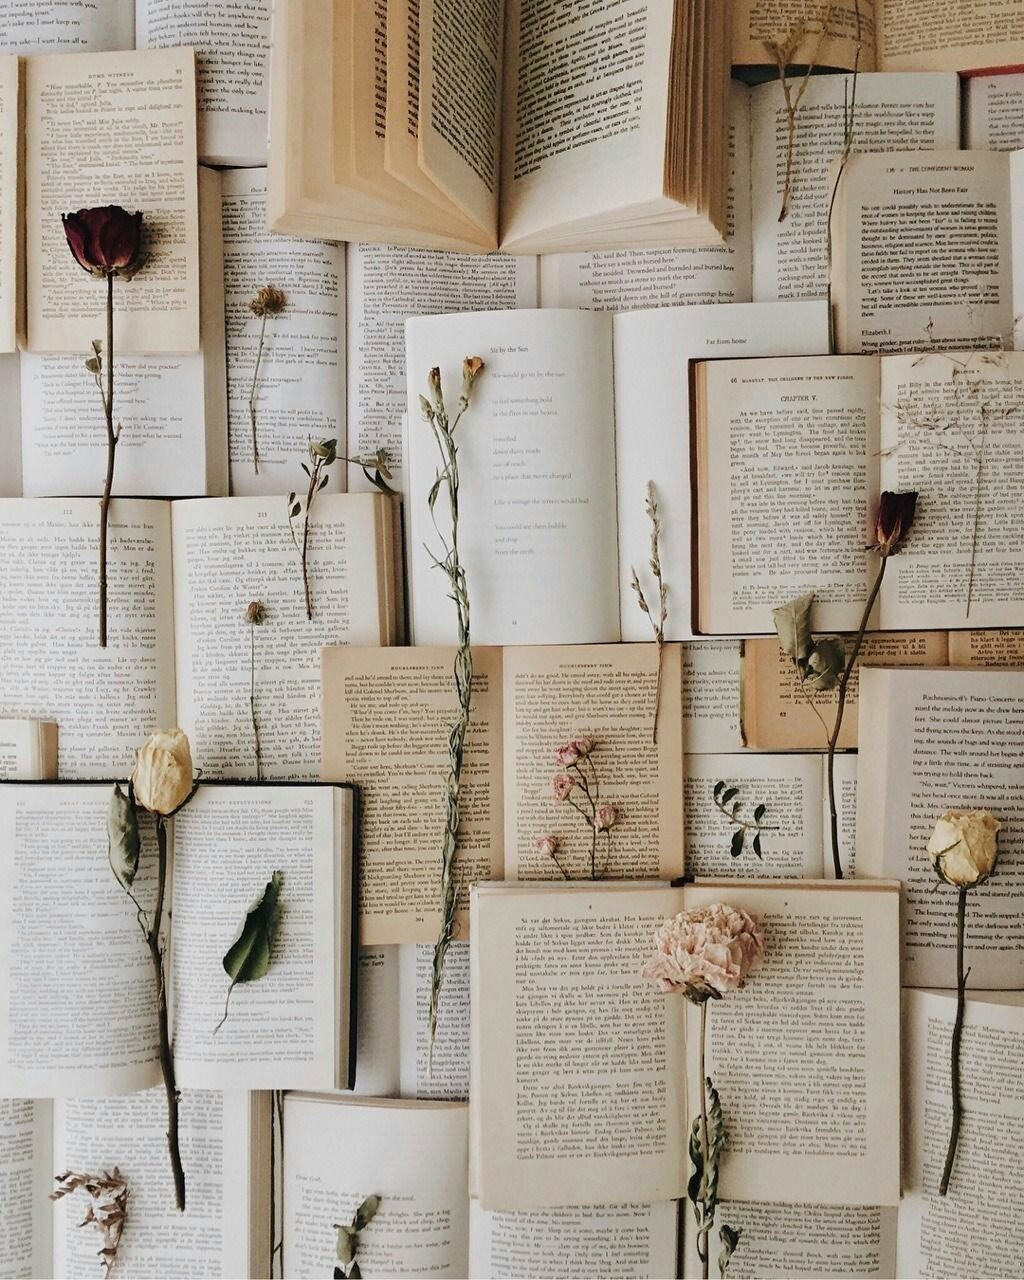 wallpaper, flower, book and sgs